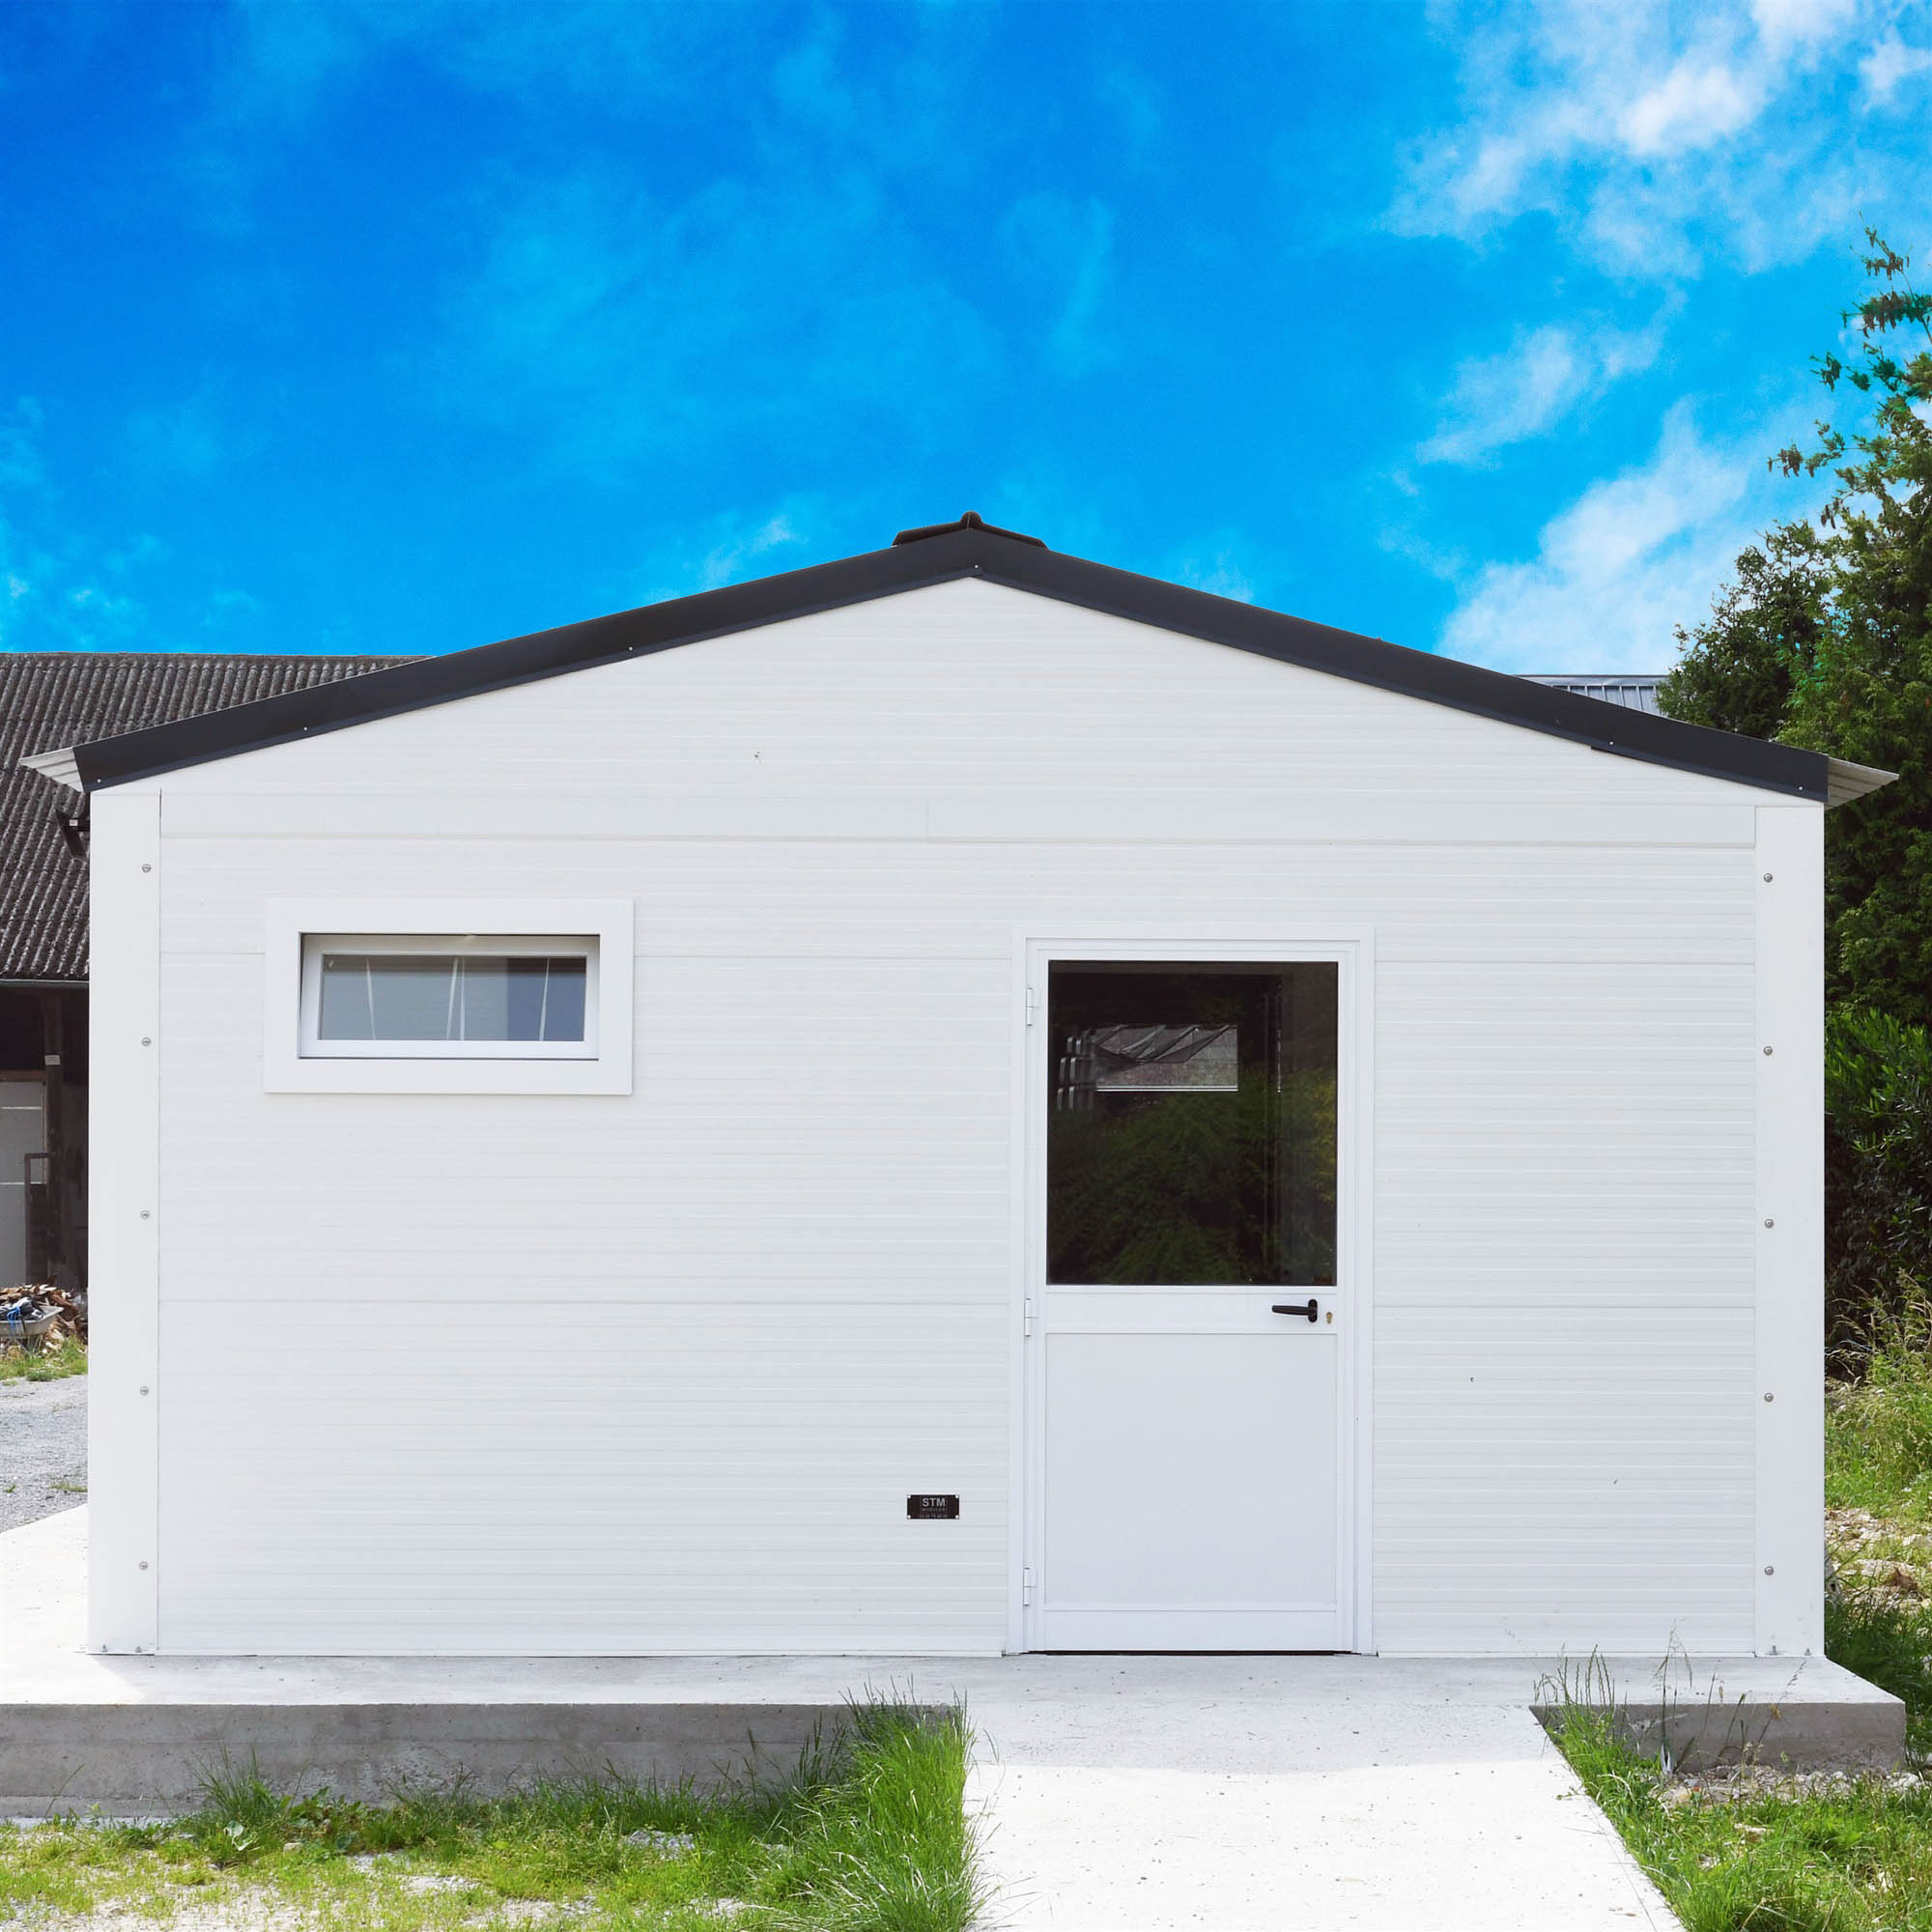 PREFABRICATED BUILDINGS AND MODULAR EXTENSIONS